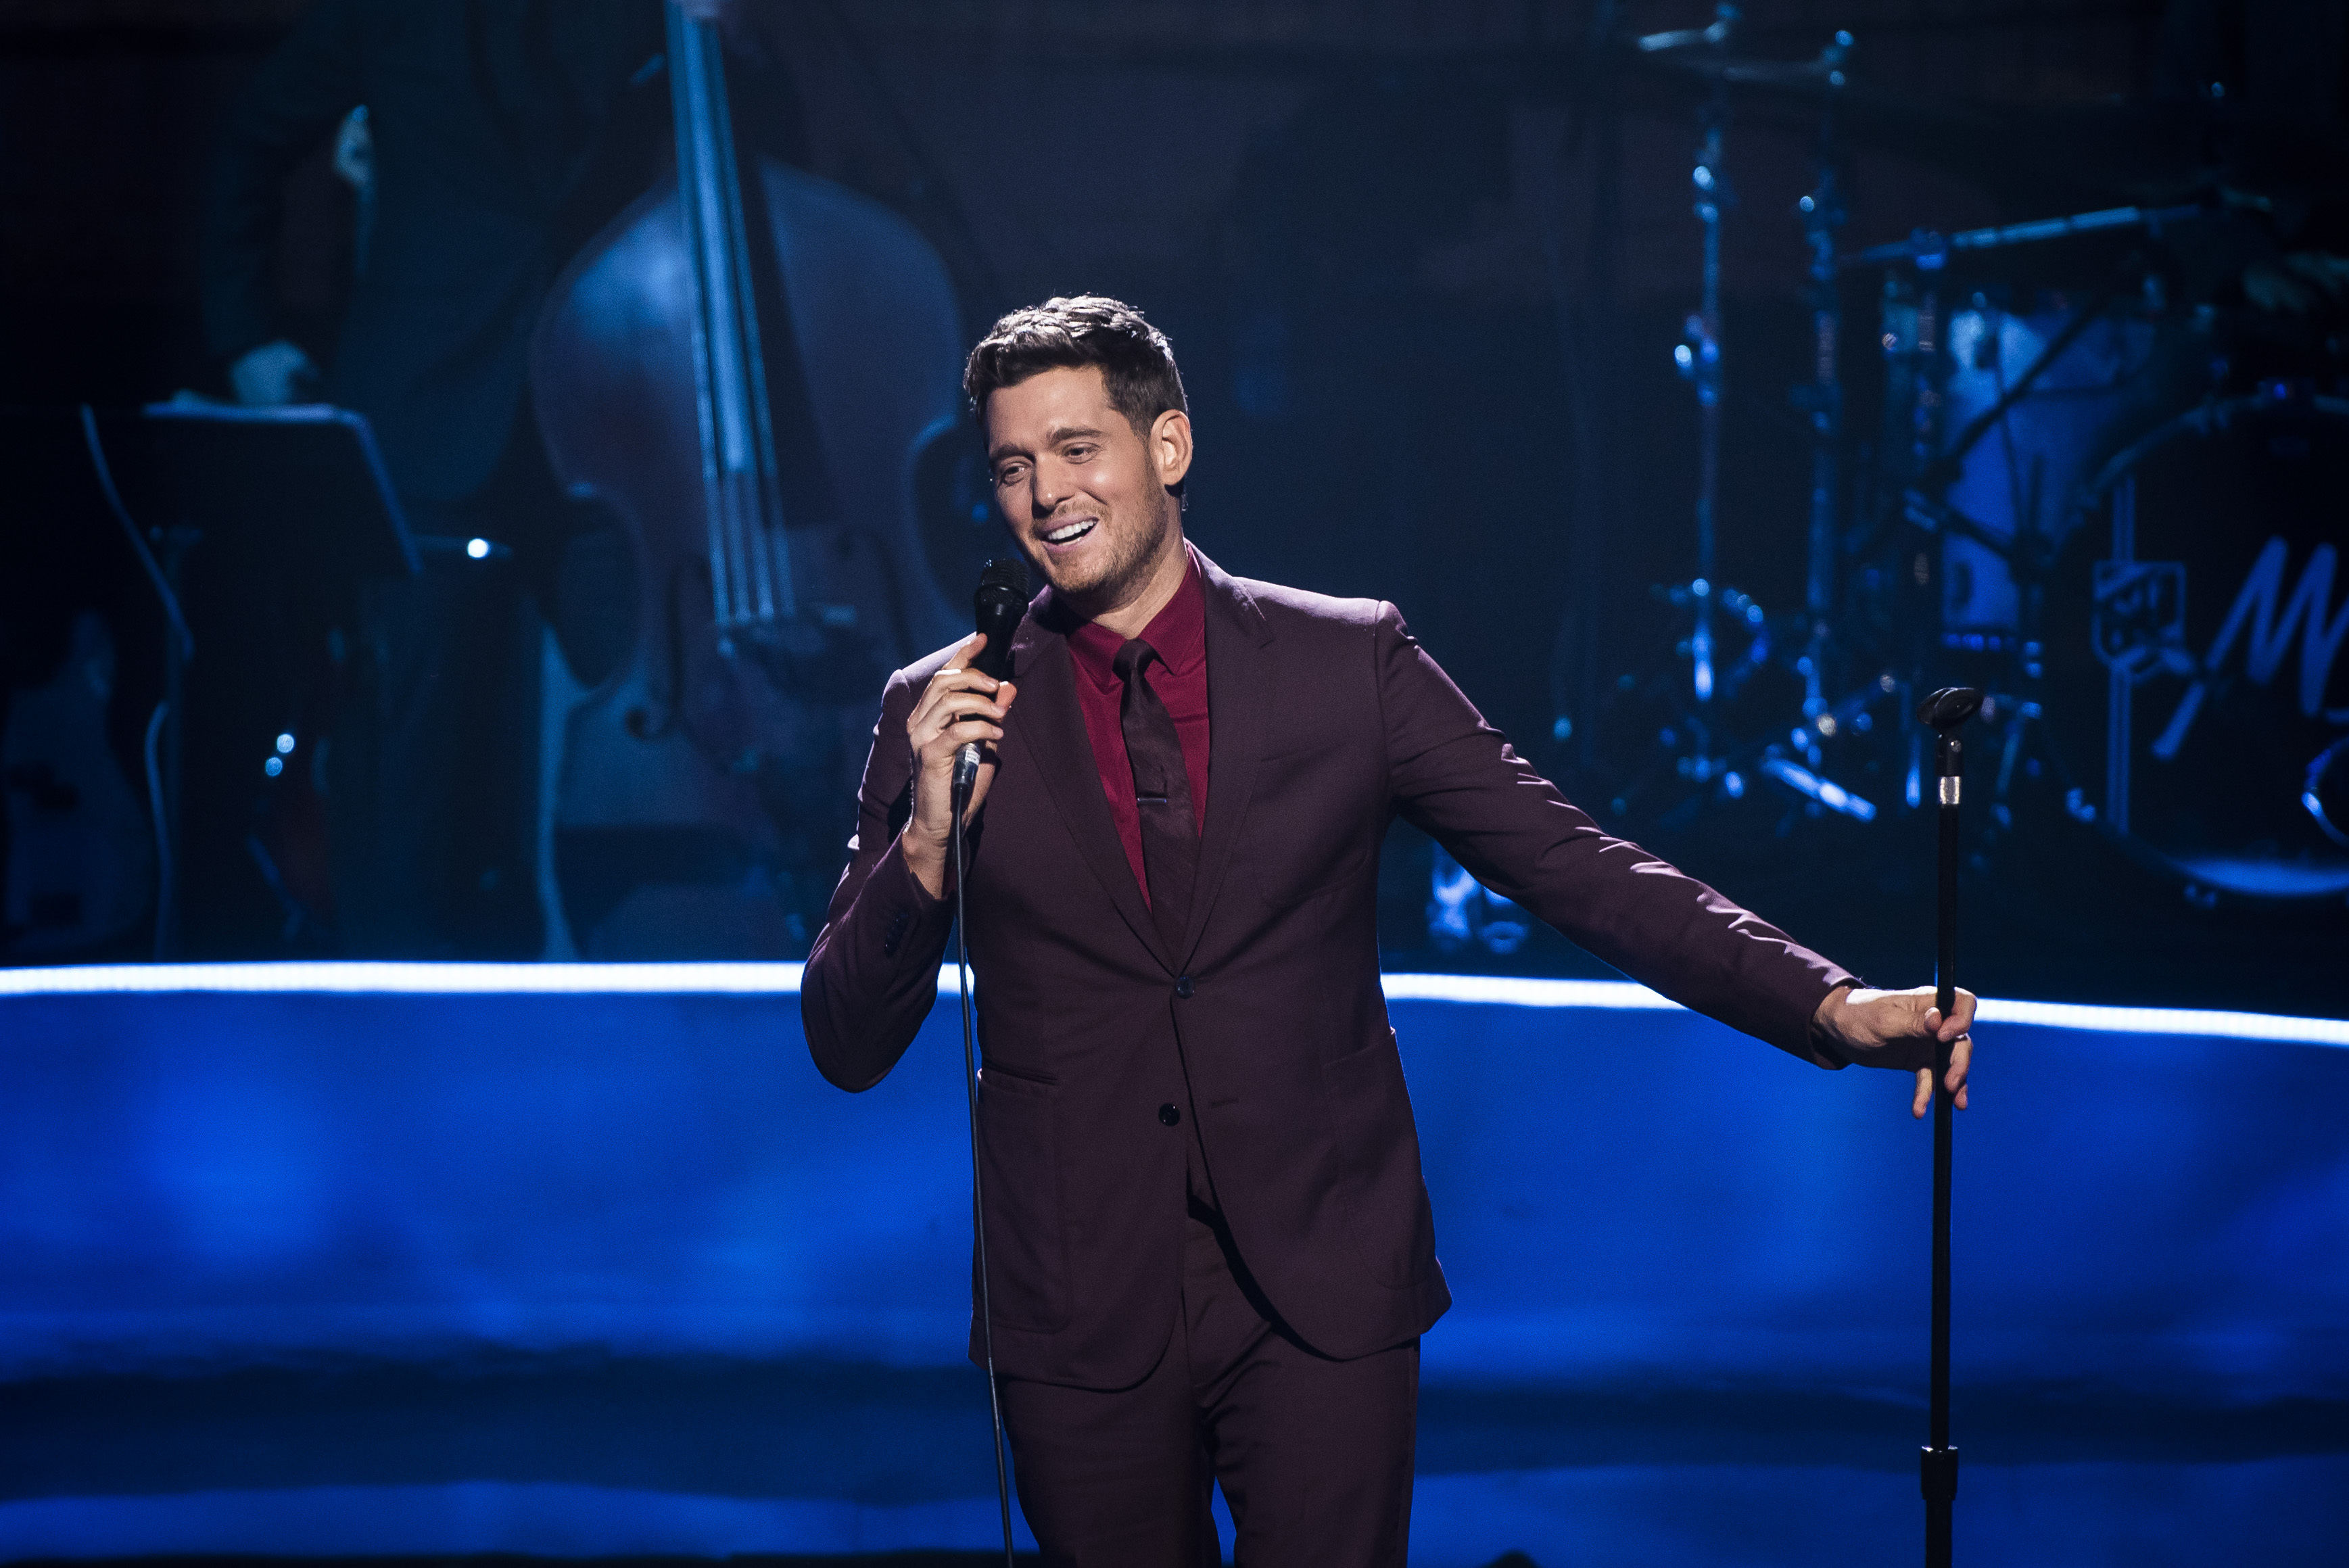 Michael Bublé announces his retirement from music in emotional 'final' interview